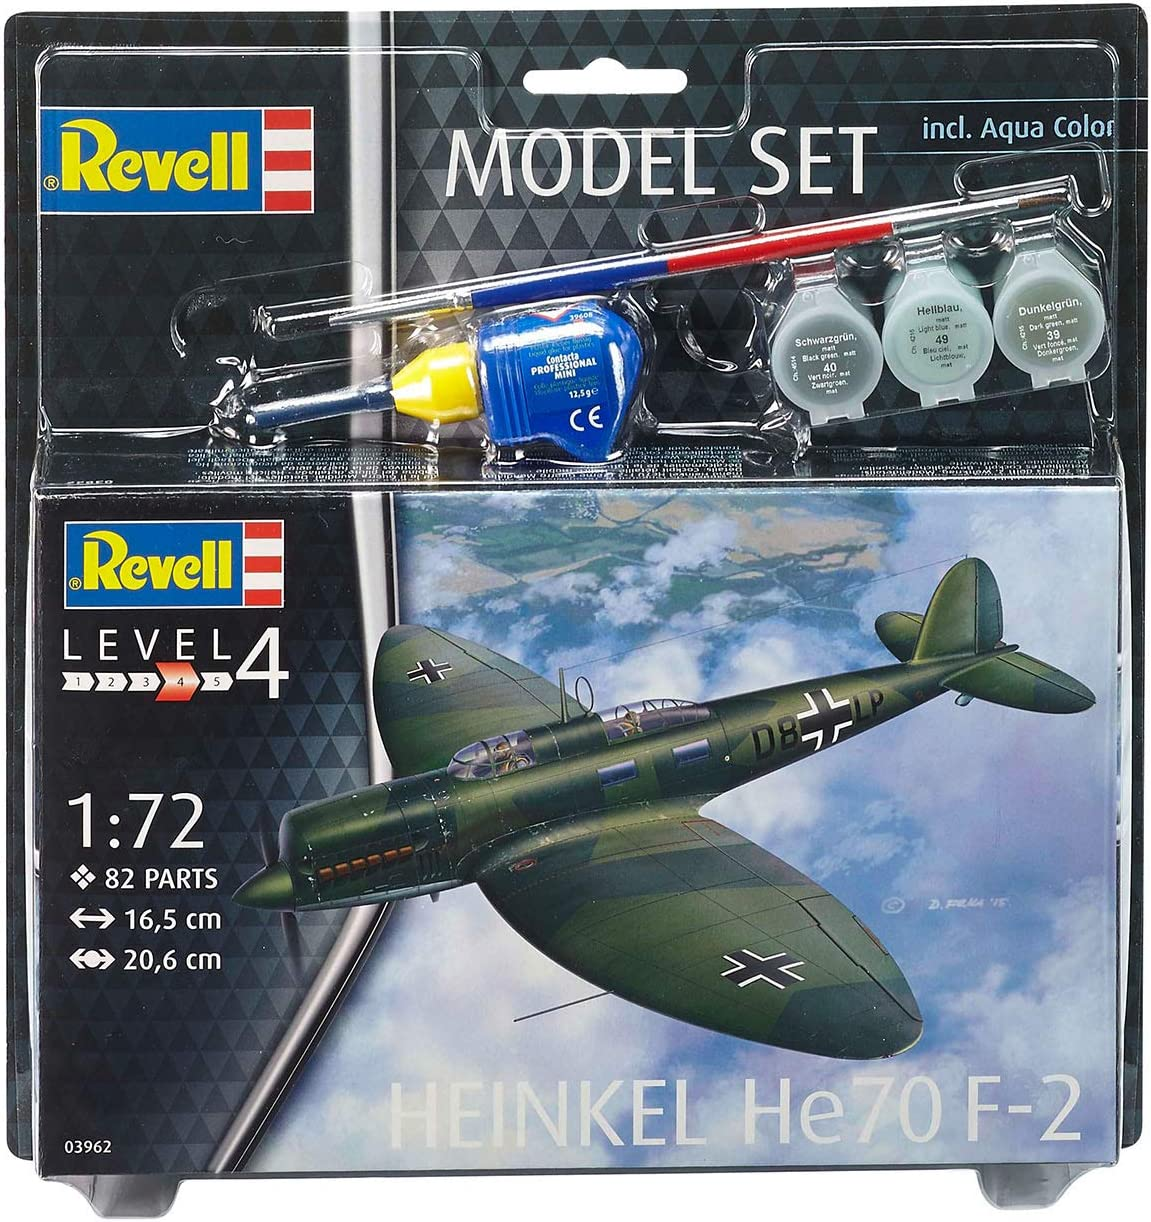 1:72 Scale Multi-Color Revell 63962 82 Pieces Heinkel He70 F-2 Model Set Level 4